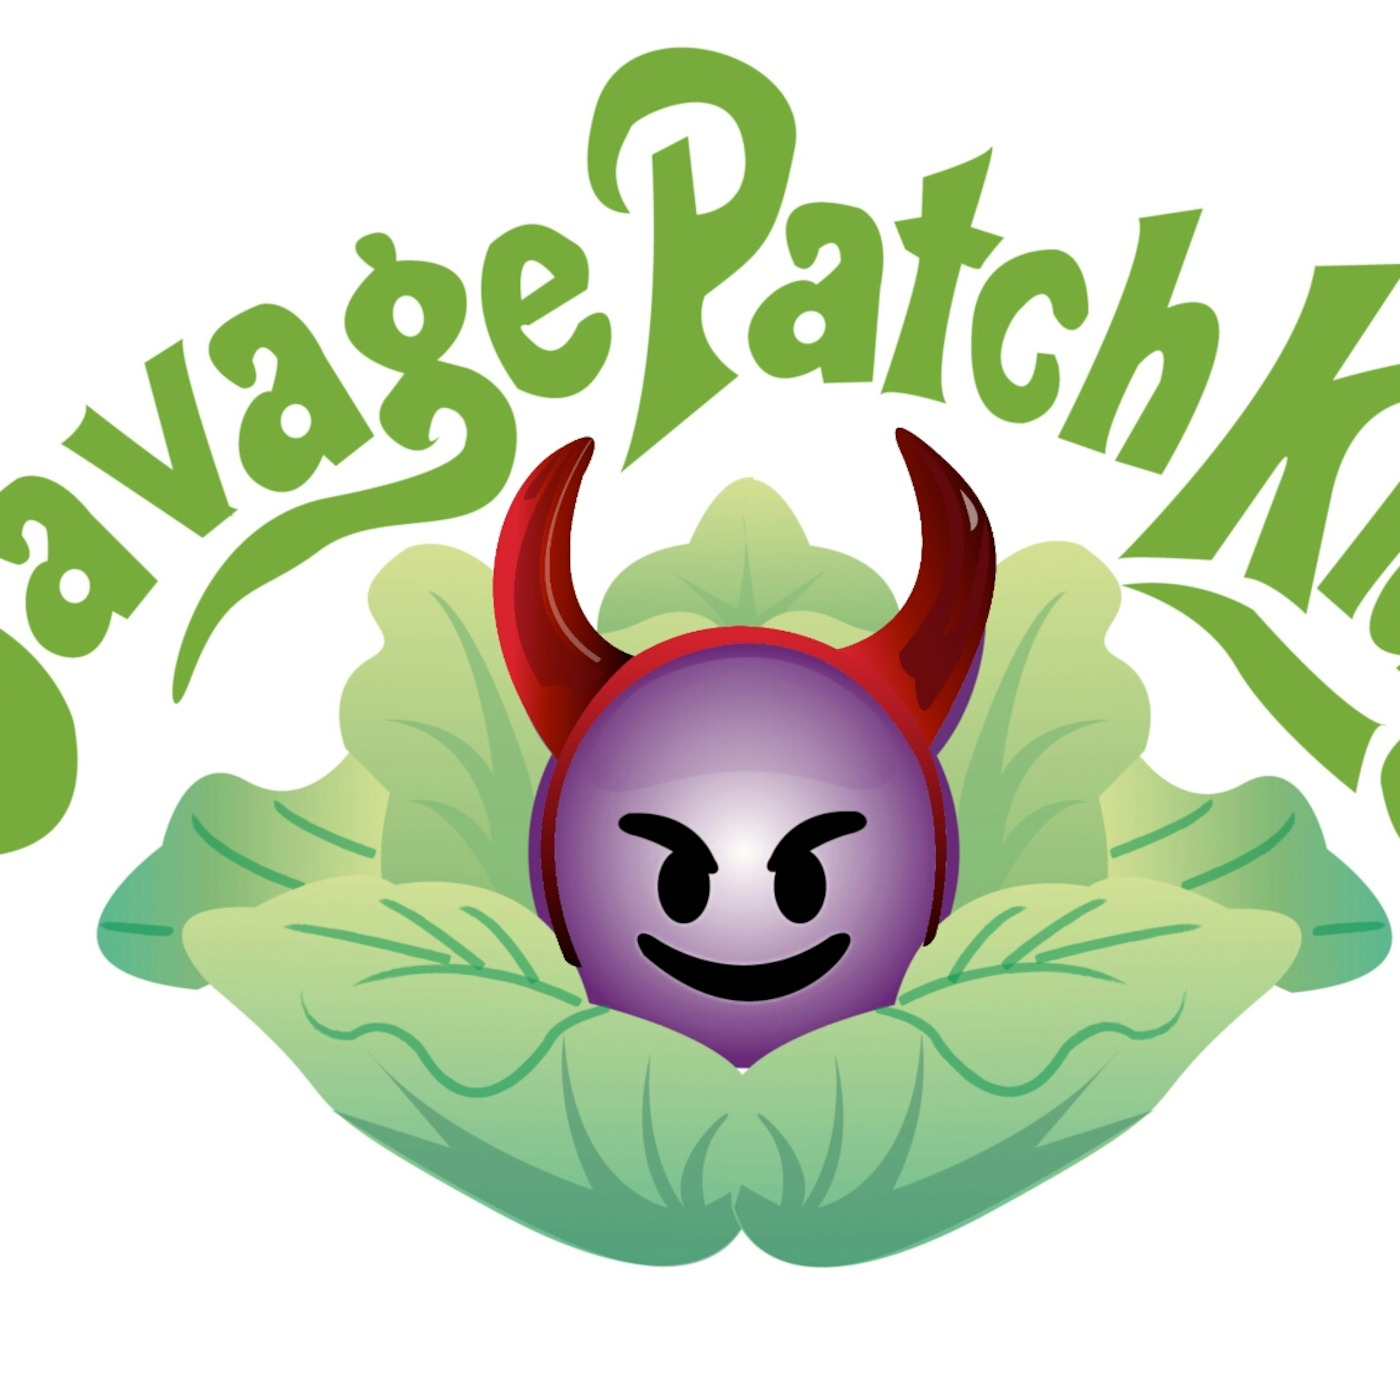 Savage patch kids